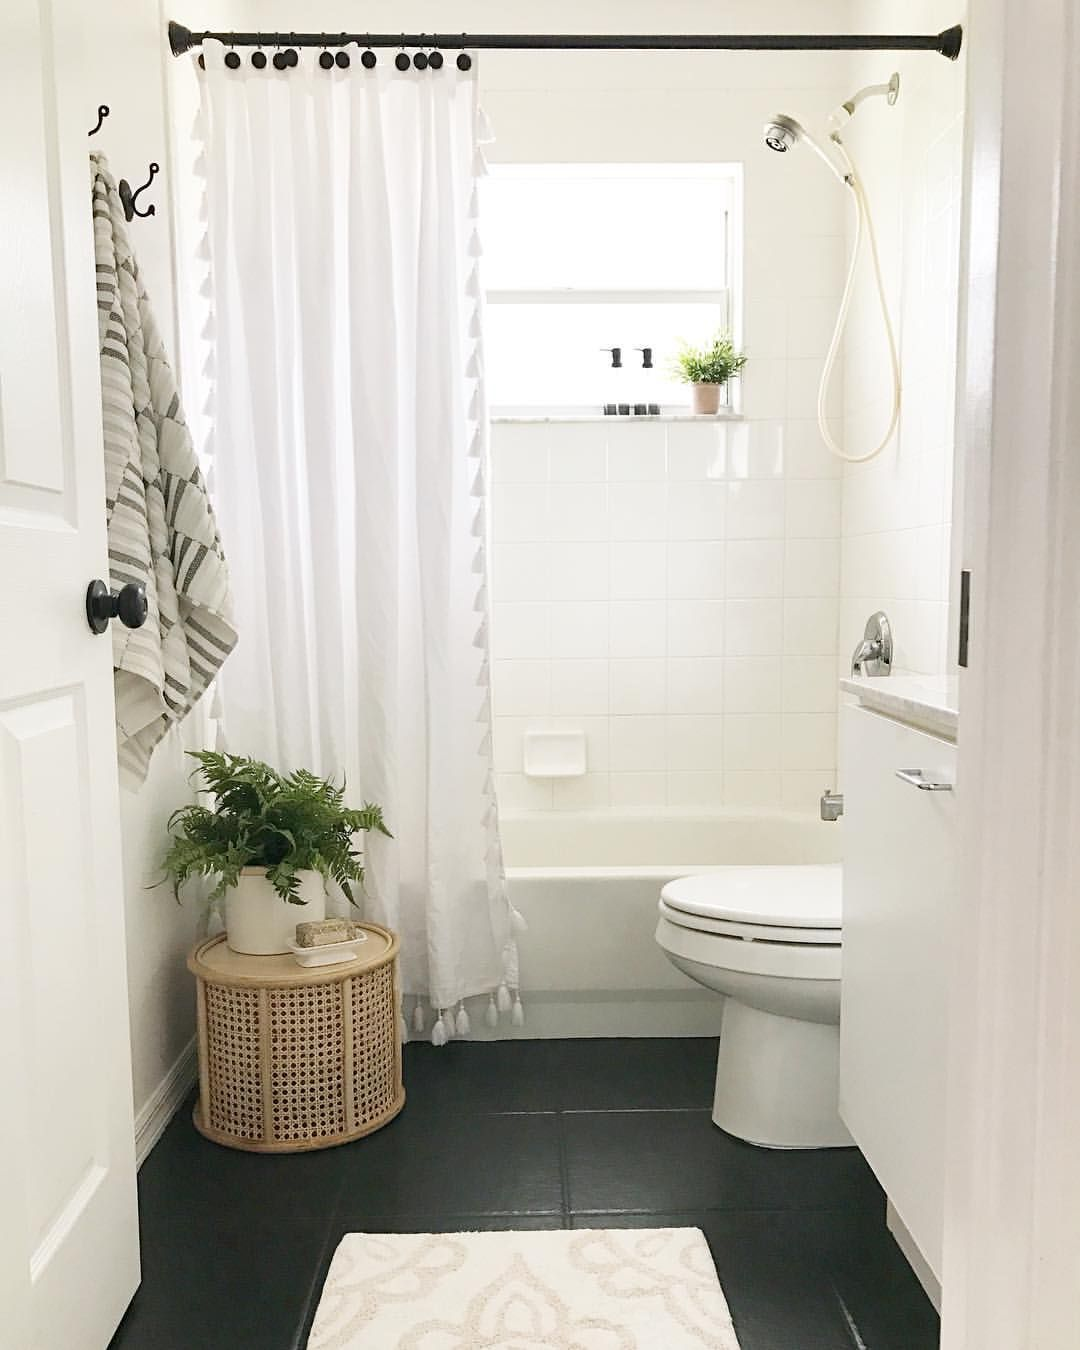 6 025 Likes 473 Comments Kelly Hartley Hartley Home Hartley Home On Instagram You Guys Black Bathroom Floor Black Tile Bathrooms Black Floor Tiles